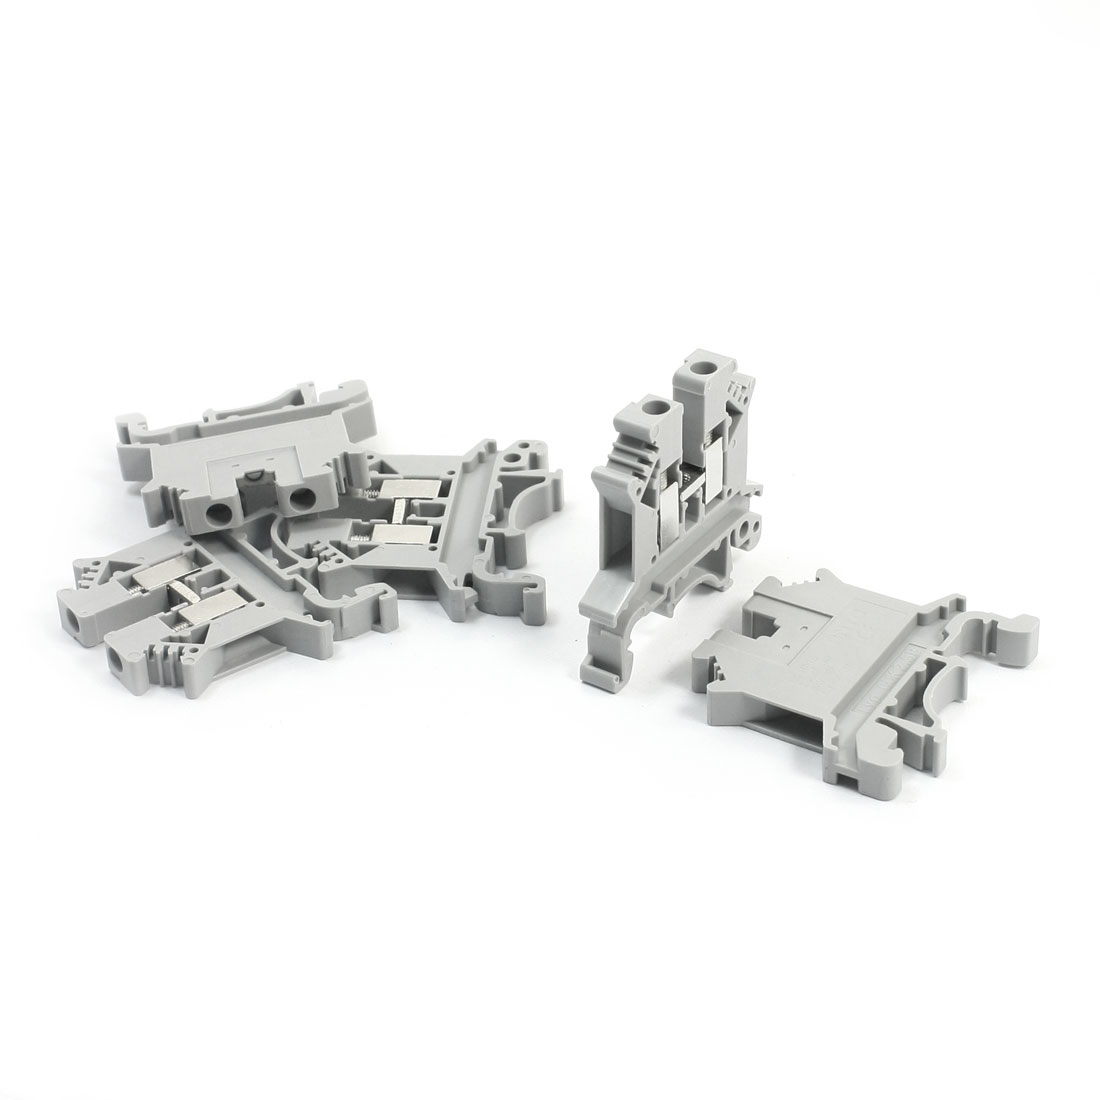 5Pcs UK-2.5B 800V 32A 2.5mm2 DIN Rail Mounting Gray Plastic Screw Clamp Clipping Terminal Block Connector